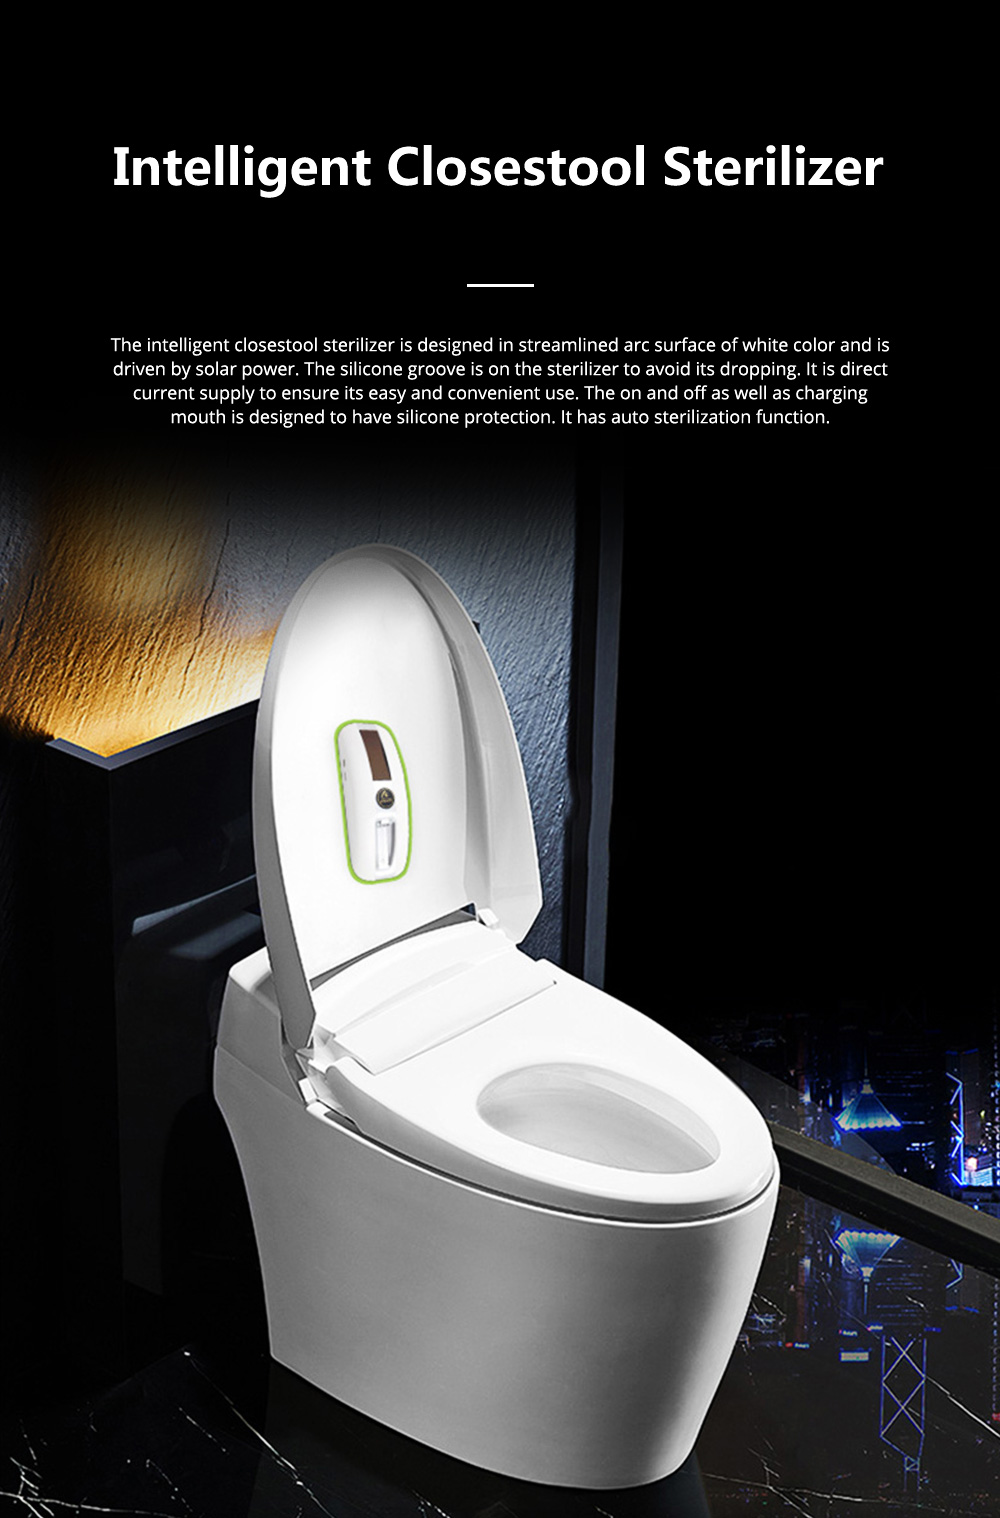 Solar-powered Intelligent Closestool Sterilizer for Household Toilet Use UV Sterilization Toilet Disinfector Easy Use Pedestal Pan Sterilizing Tool 0